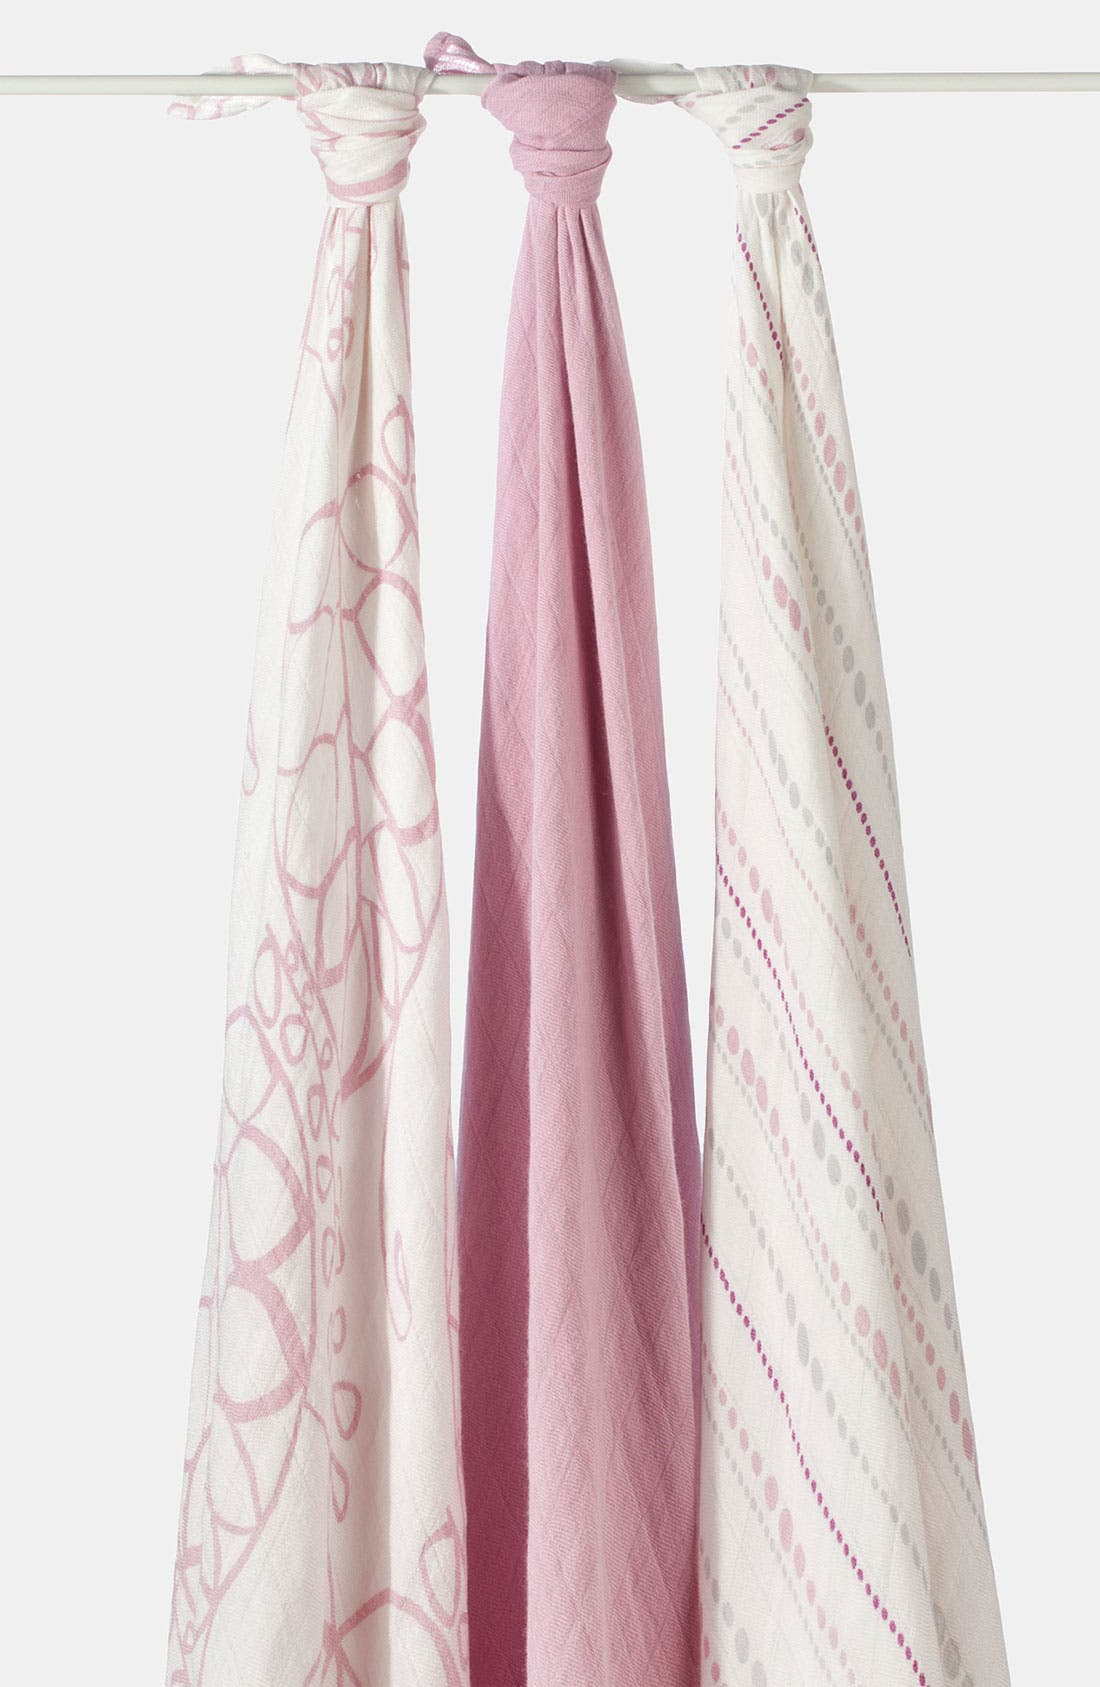 Swaddling Cloths, 3-Pack,                         Main,                         color, TRANQUILITY